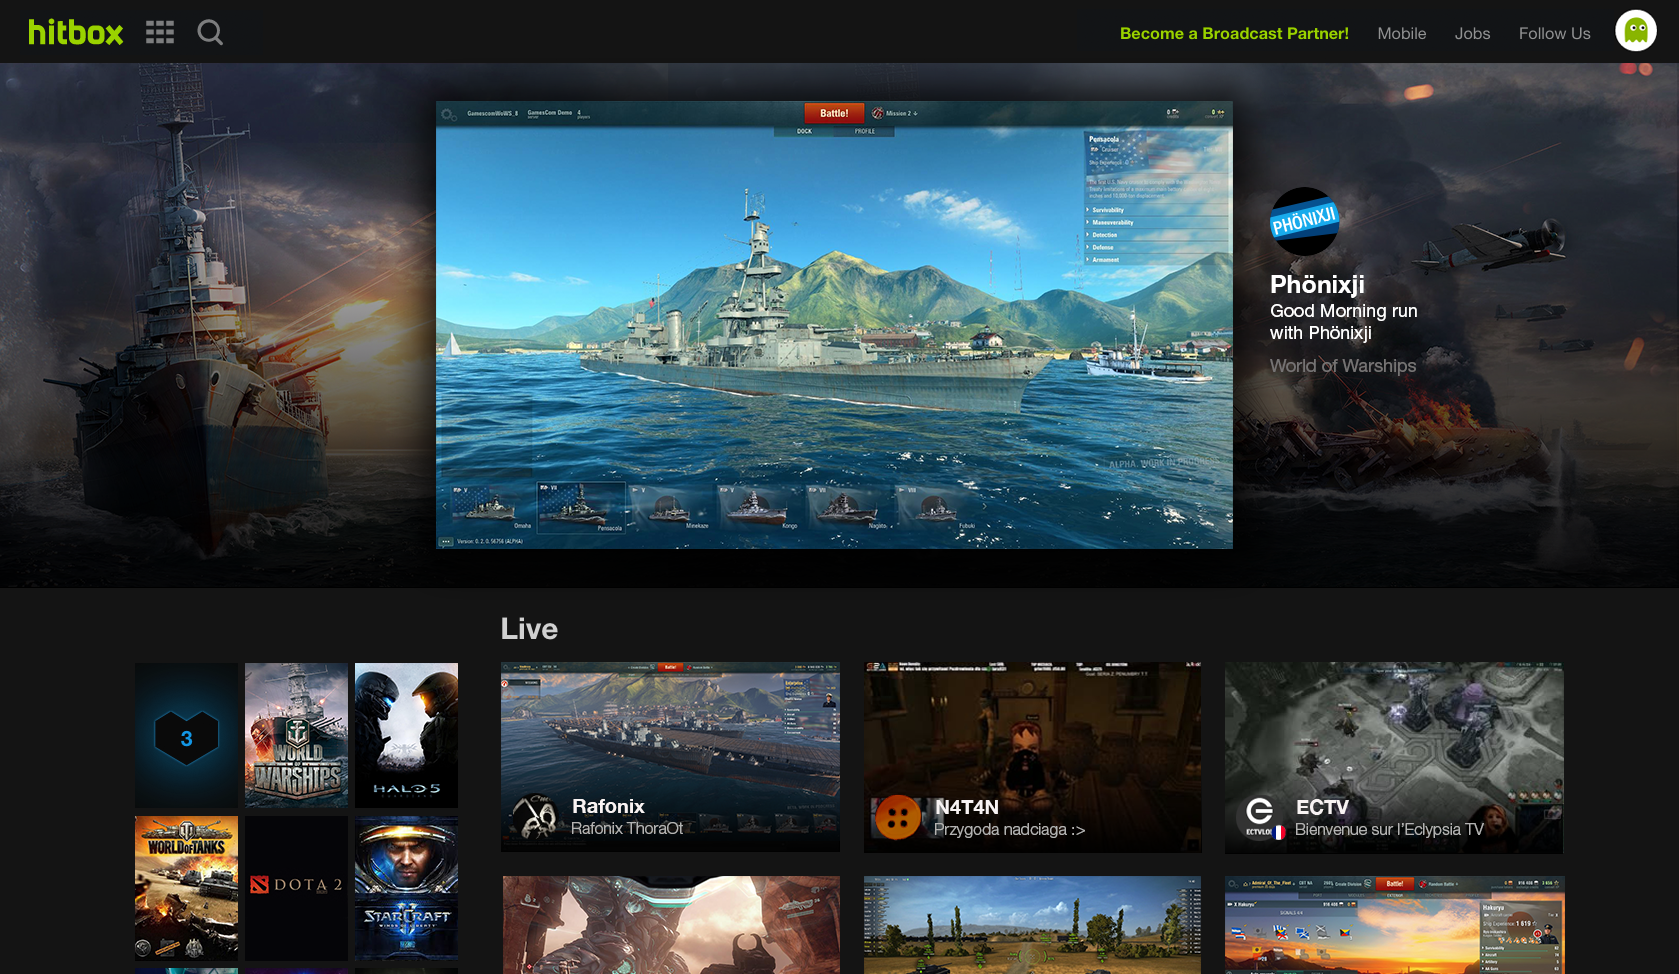 Wargaming's World of Warships on Hitbox streaming platform